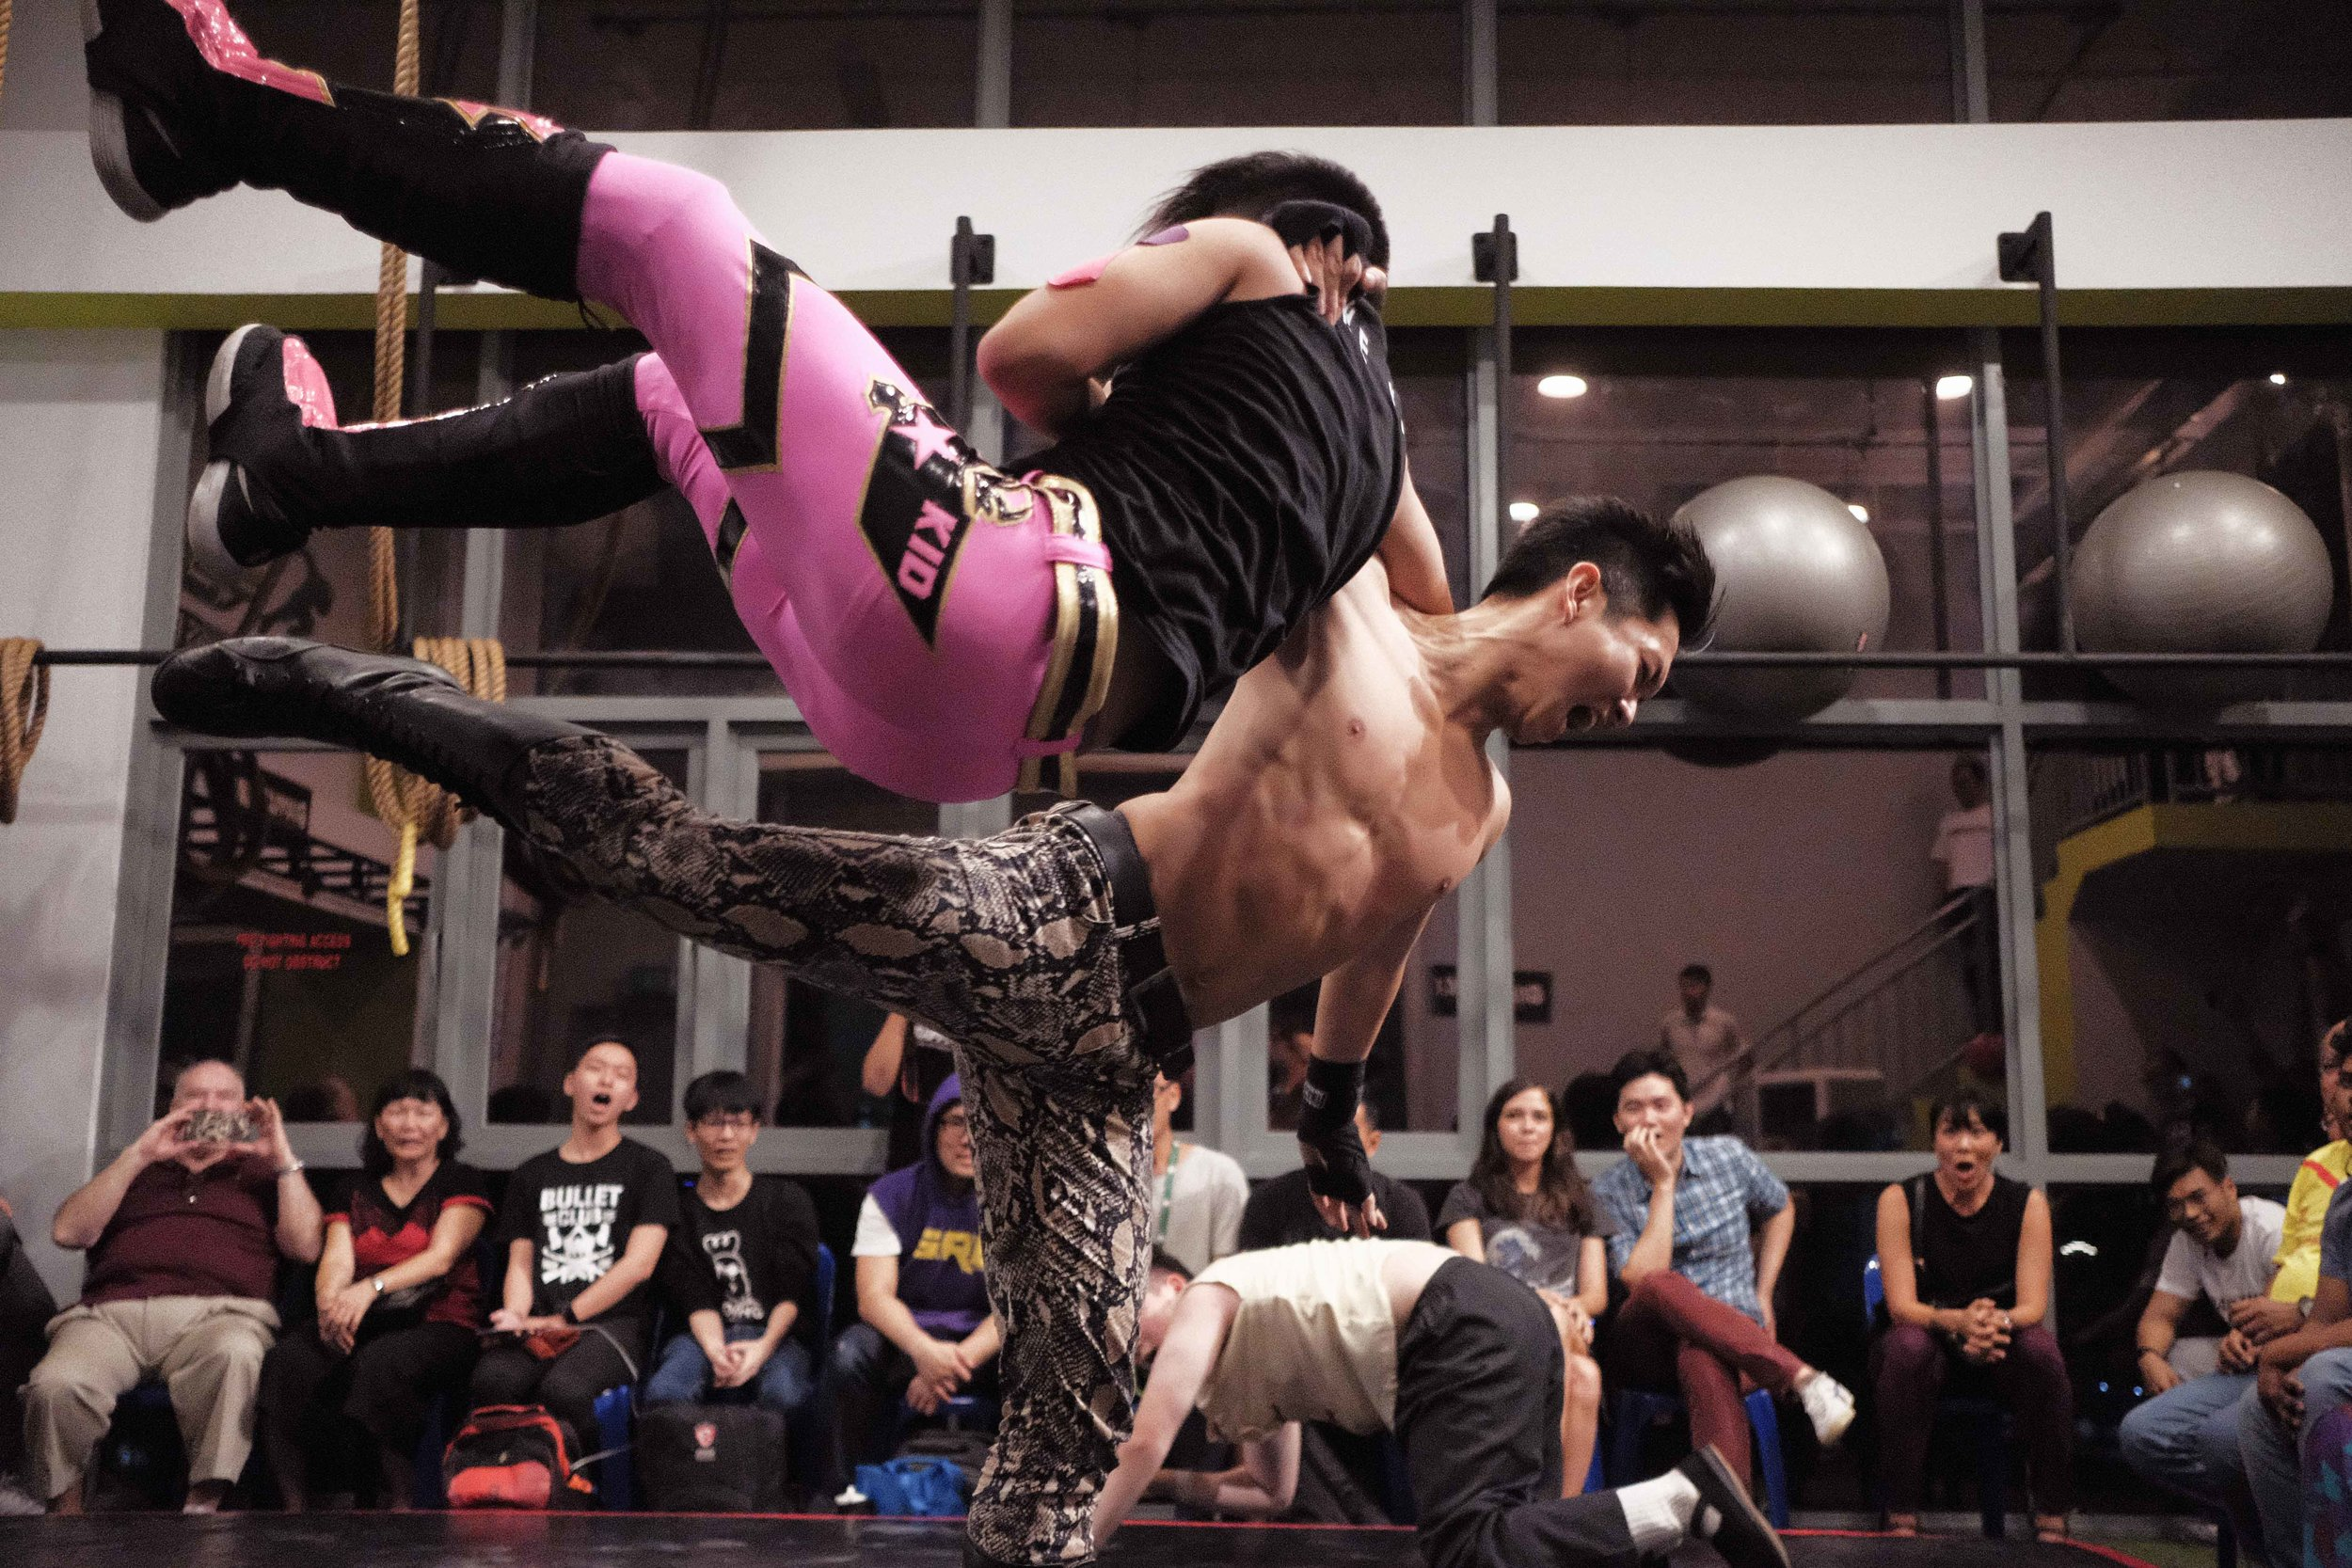 "Photo: Marc Nair - Causeway Jam, 16 March 2018, Grapple MAX dojo. Dennis ""The Ladykiller"" H flooring his opponent in balletic style."